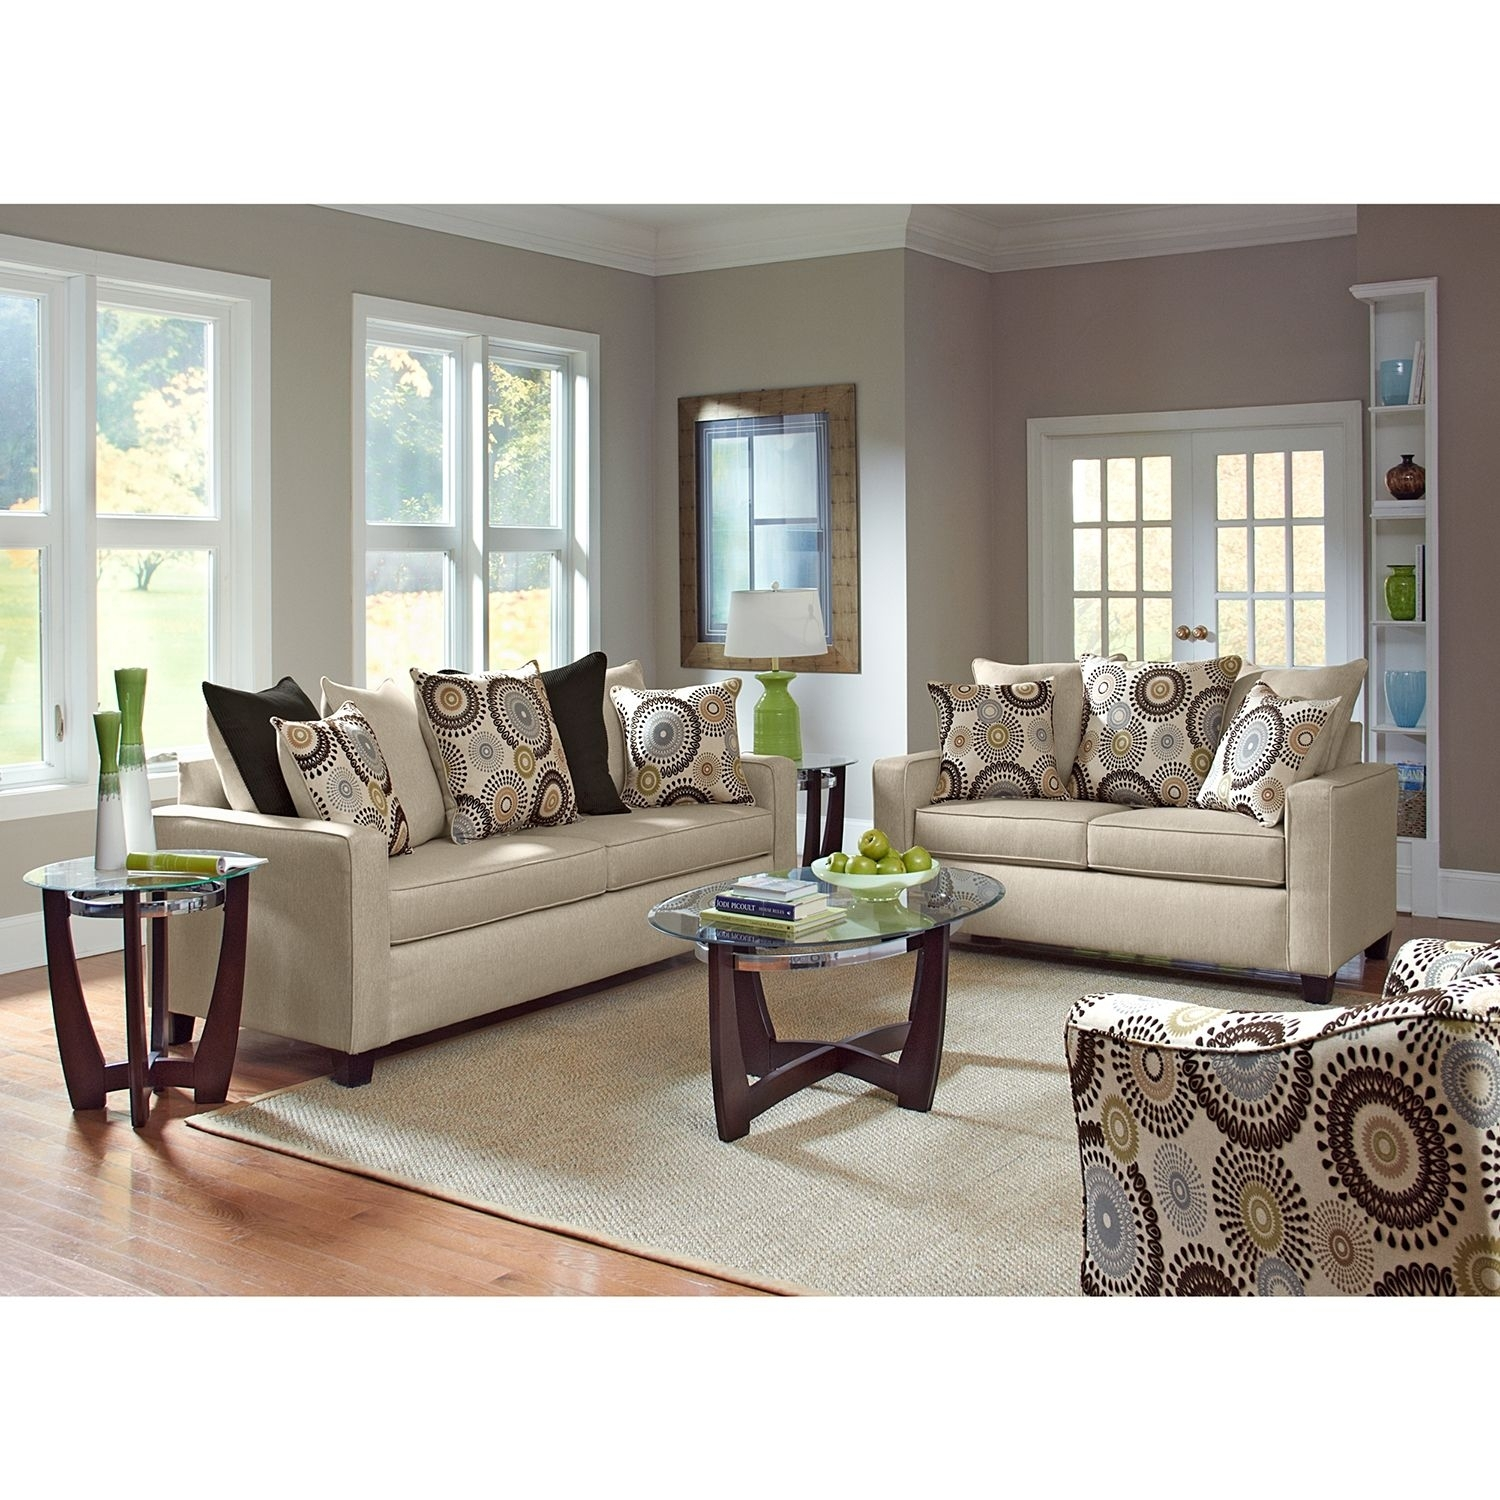 Stoked Upholstery 3 Pc. Living Room - Value City Furniture | Home for Turdur 2 Piece Sectionals With Laf Loveseat (Image 26 of 30)